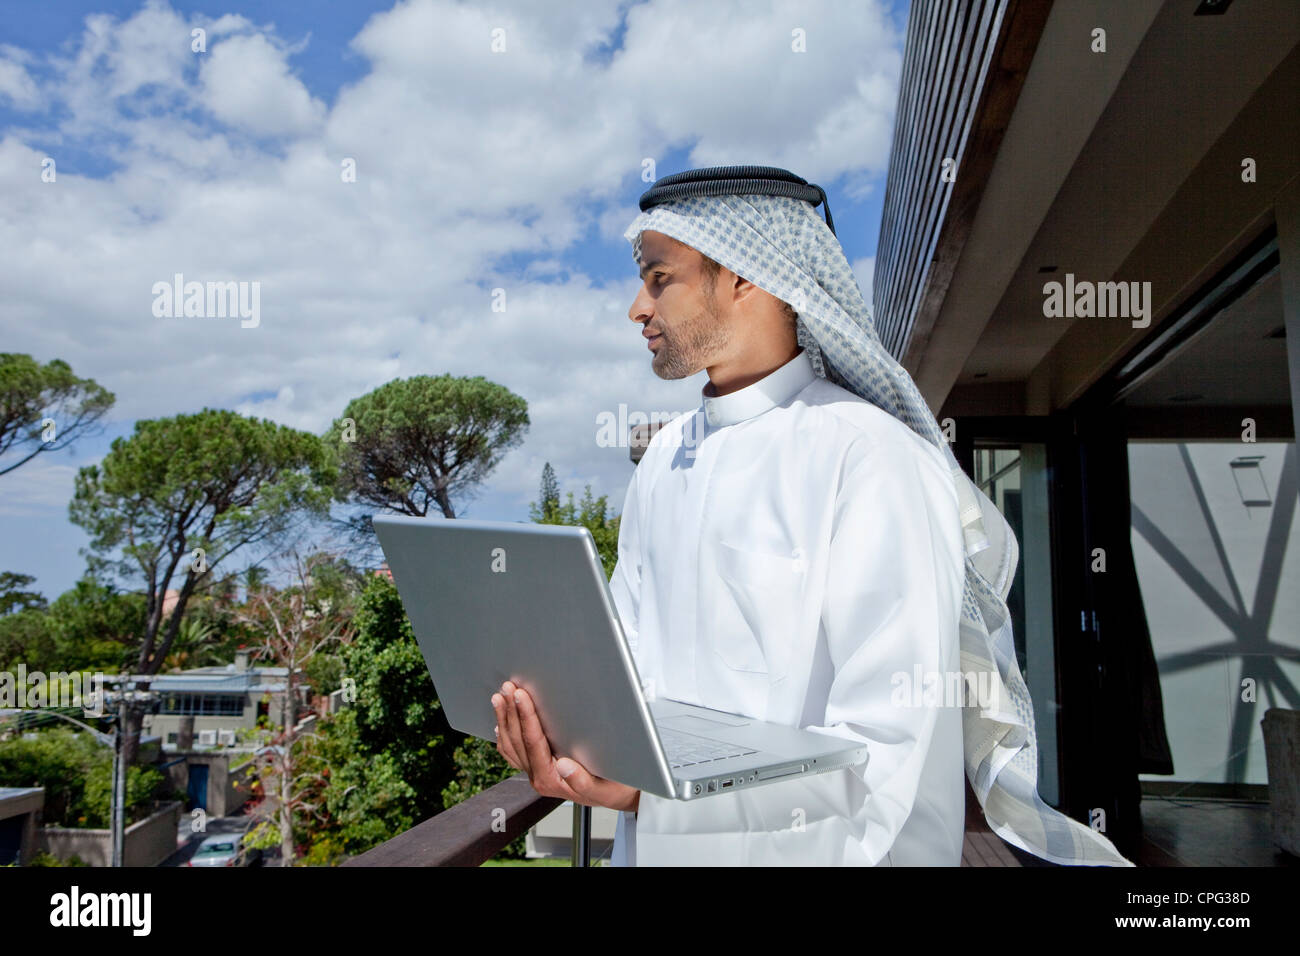 Arab man with laptop, standing by the balcony. - Stock Image